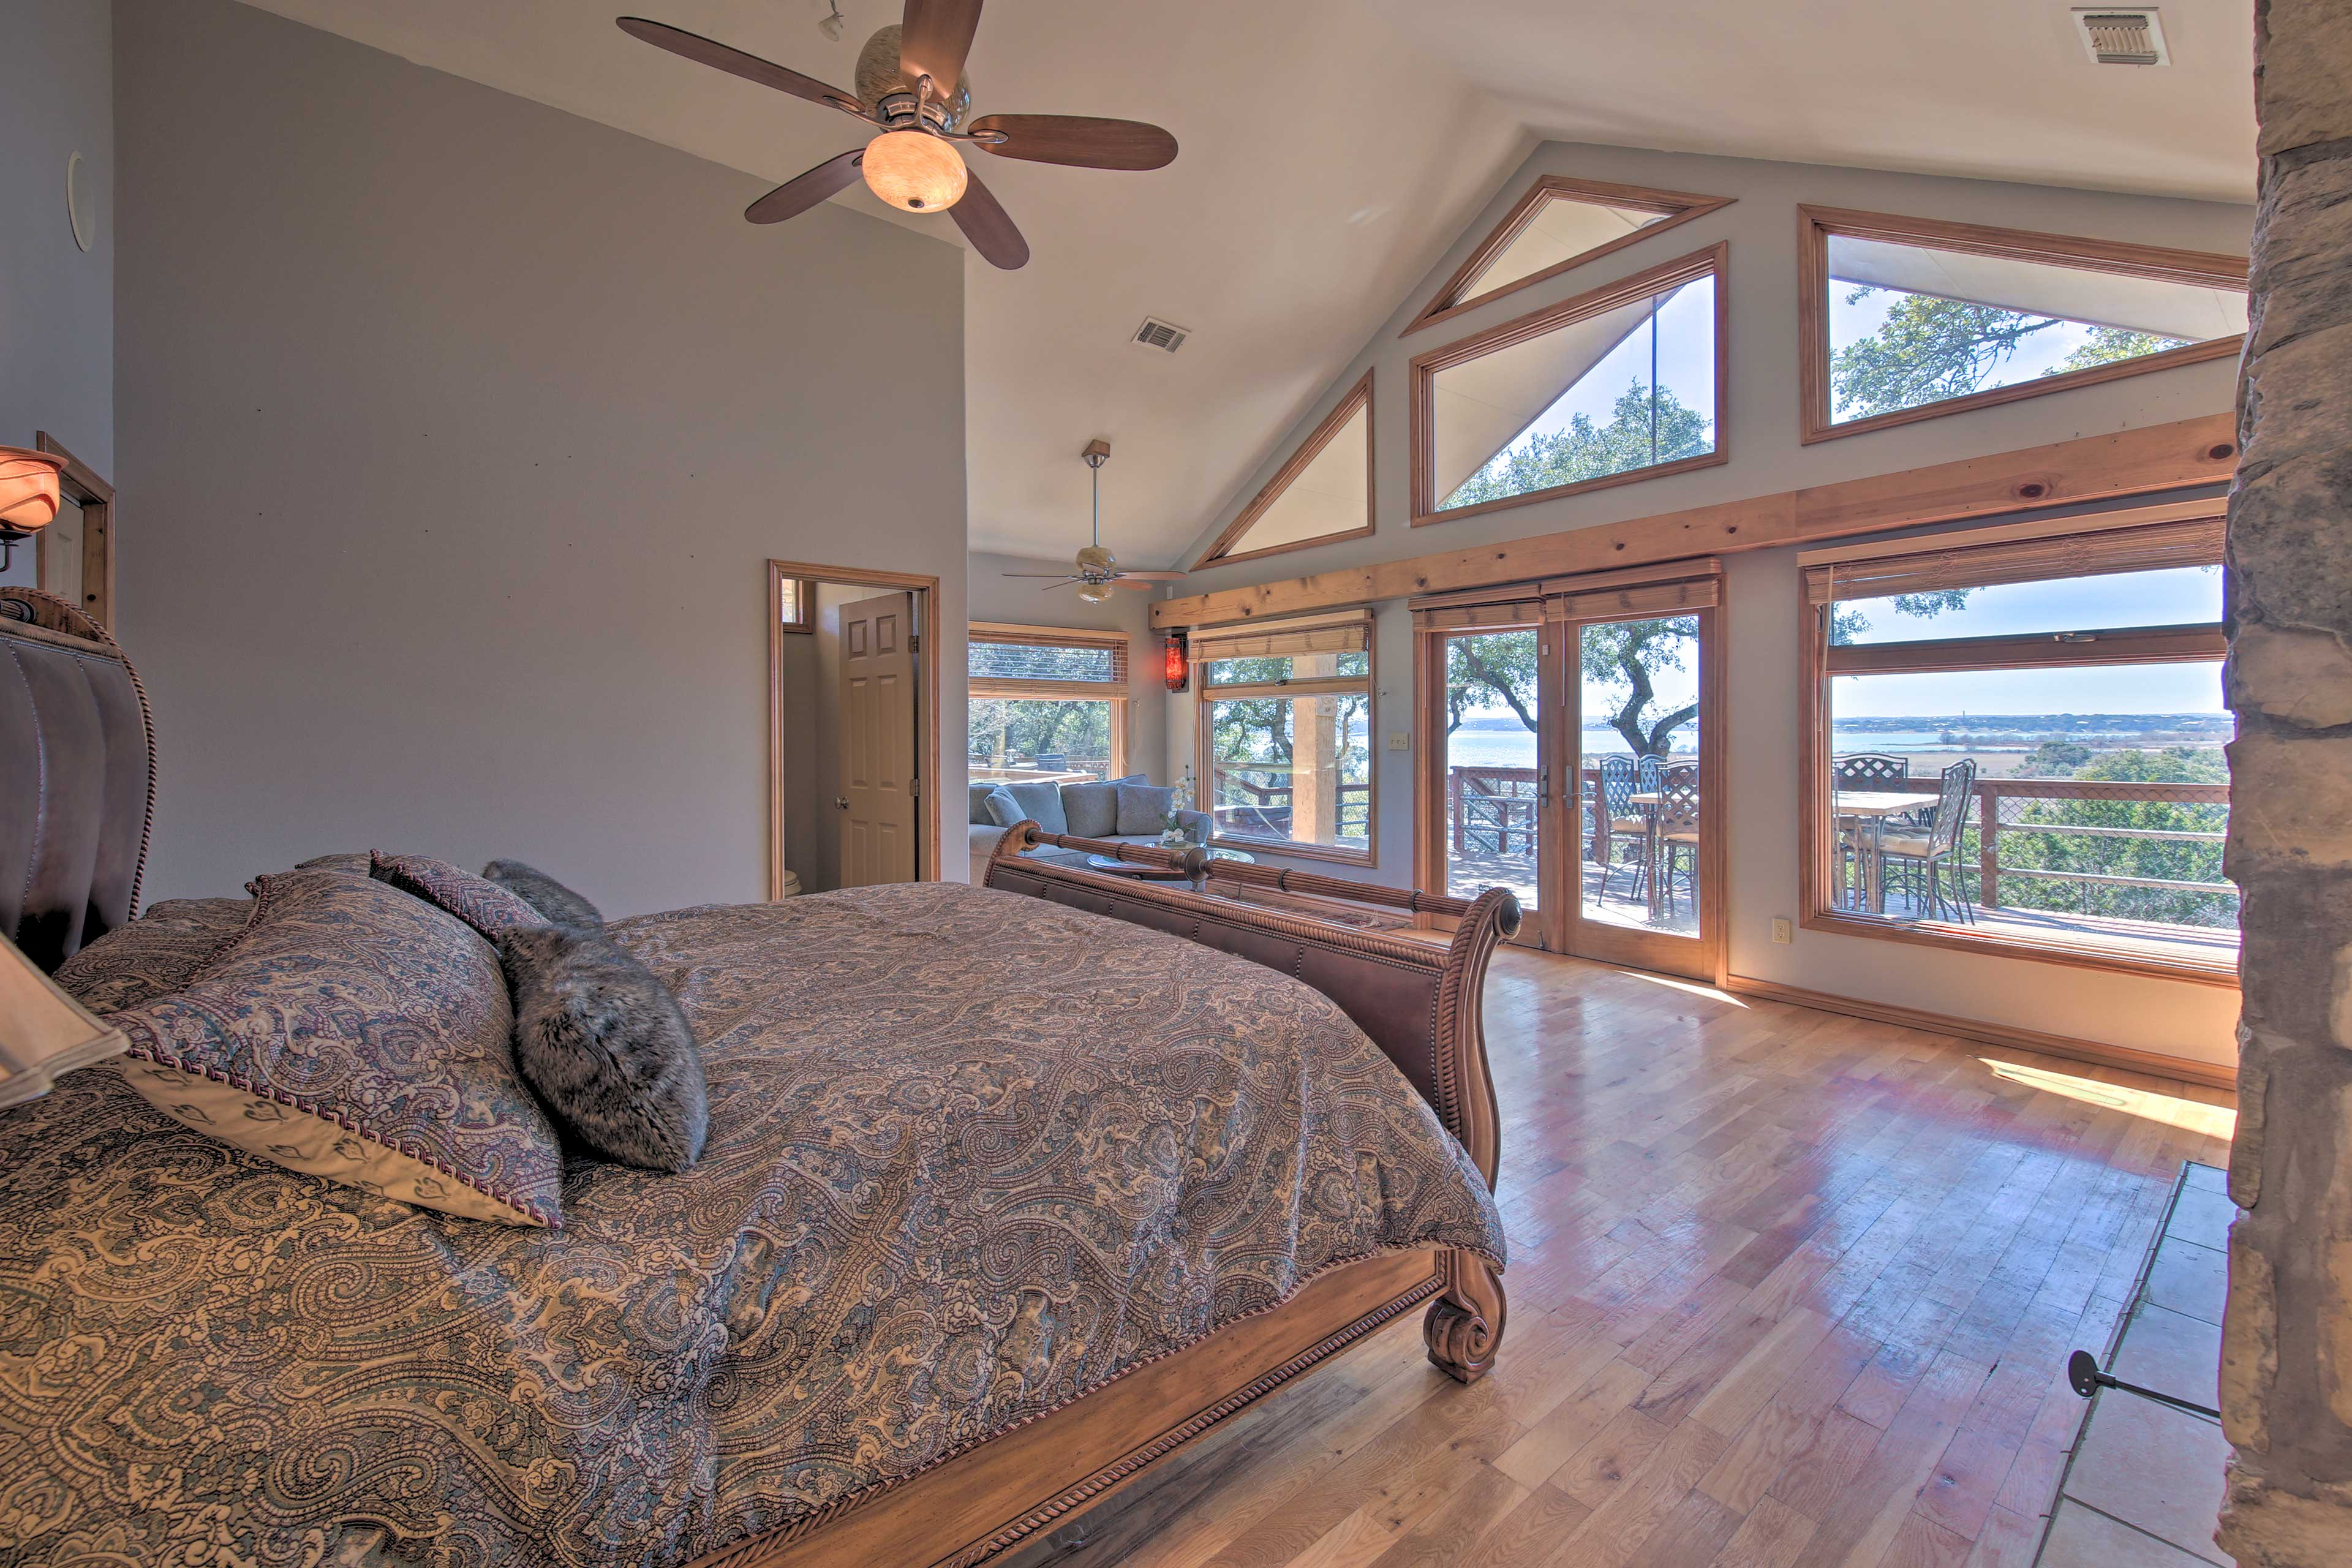 The master suite features natural light and cathedral ceilings.